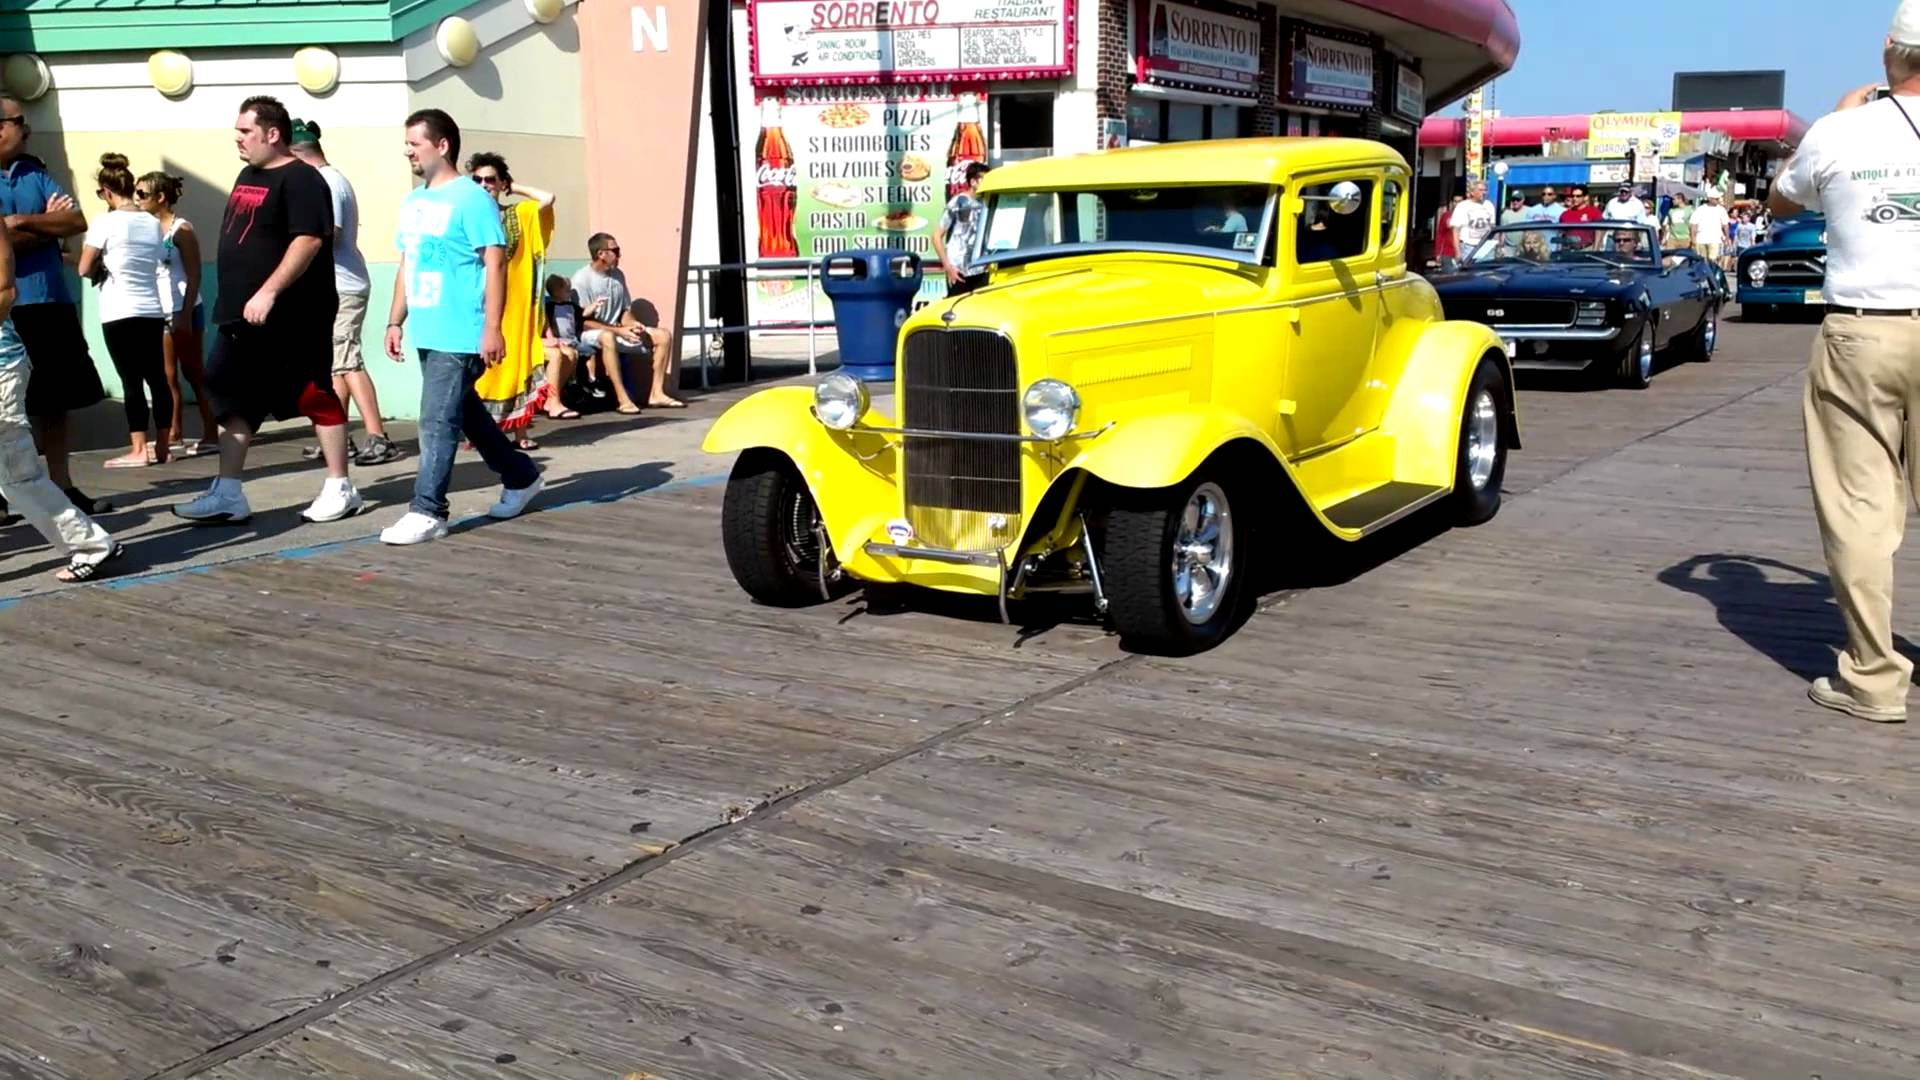 This Weekend Is The Annual The Spring Boardwalk Classic Car Show - Car shows in nj